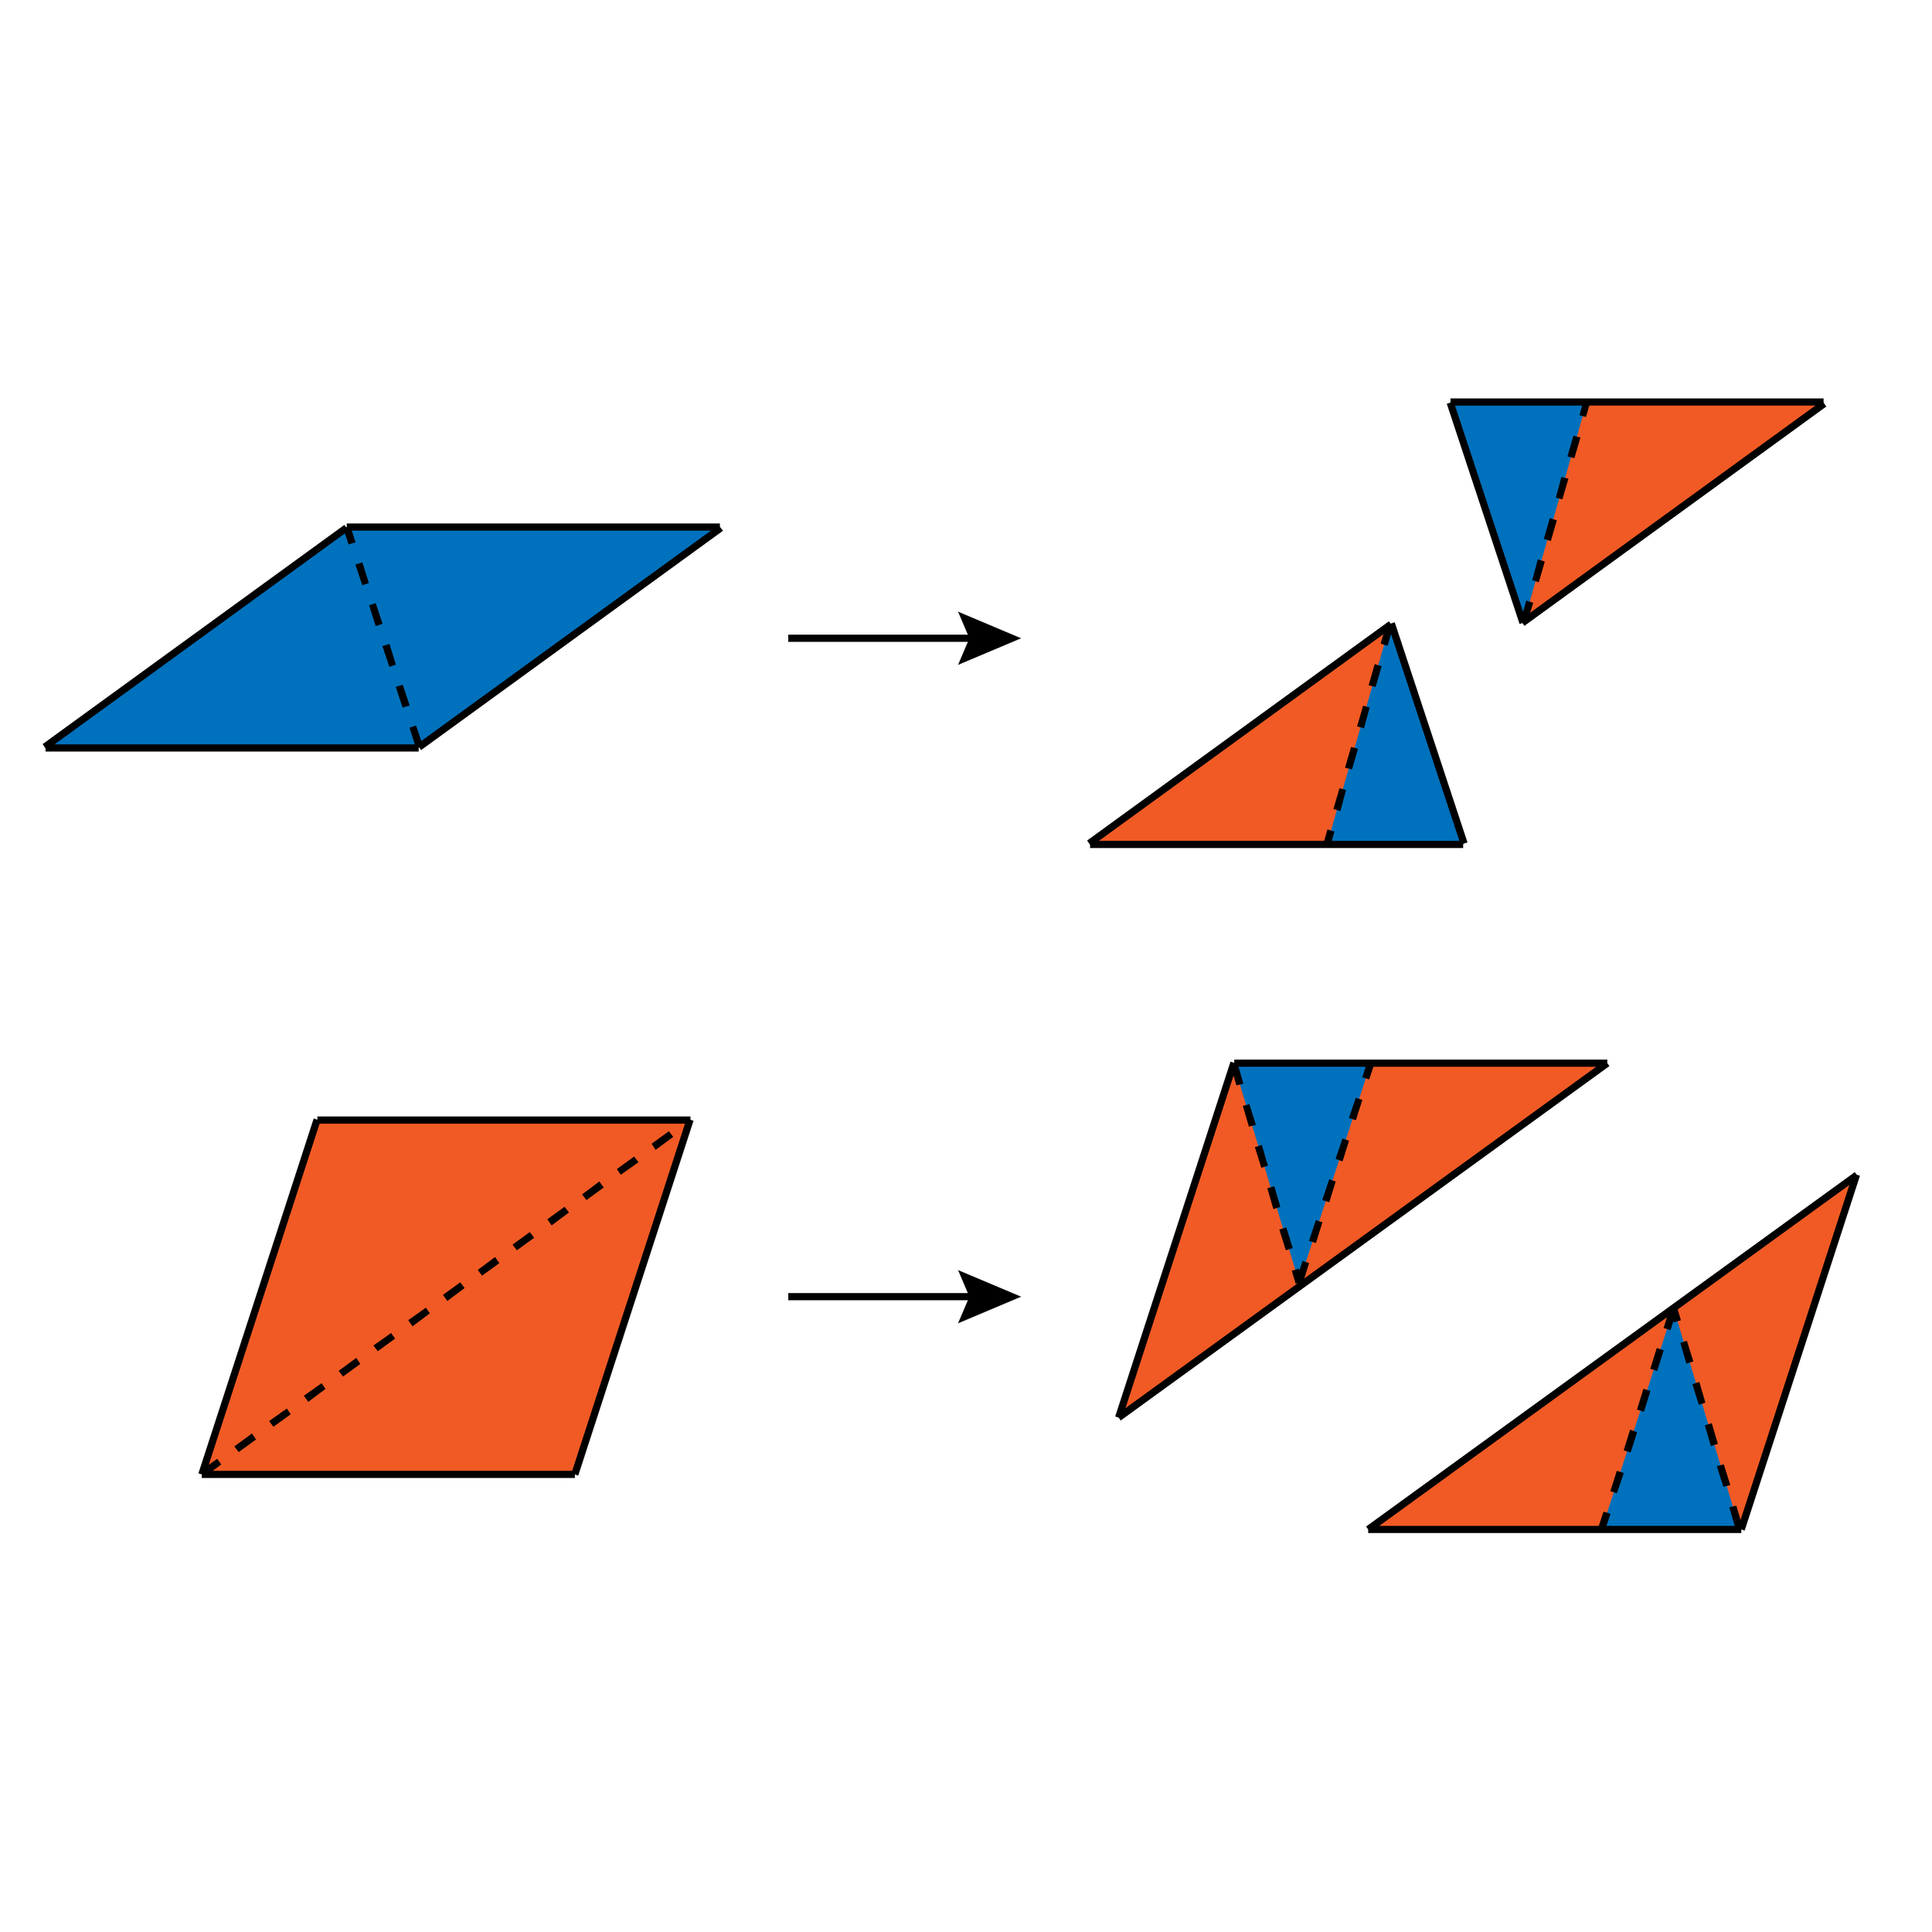 Subdivision rules in the P3 Penrose tiling generated by two rhombi built from acute and obtuse Robinson triangles